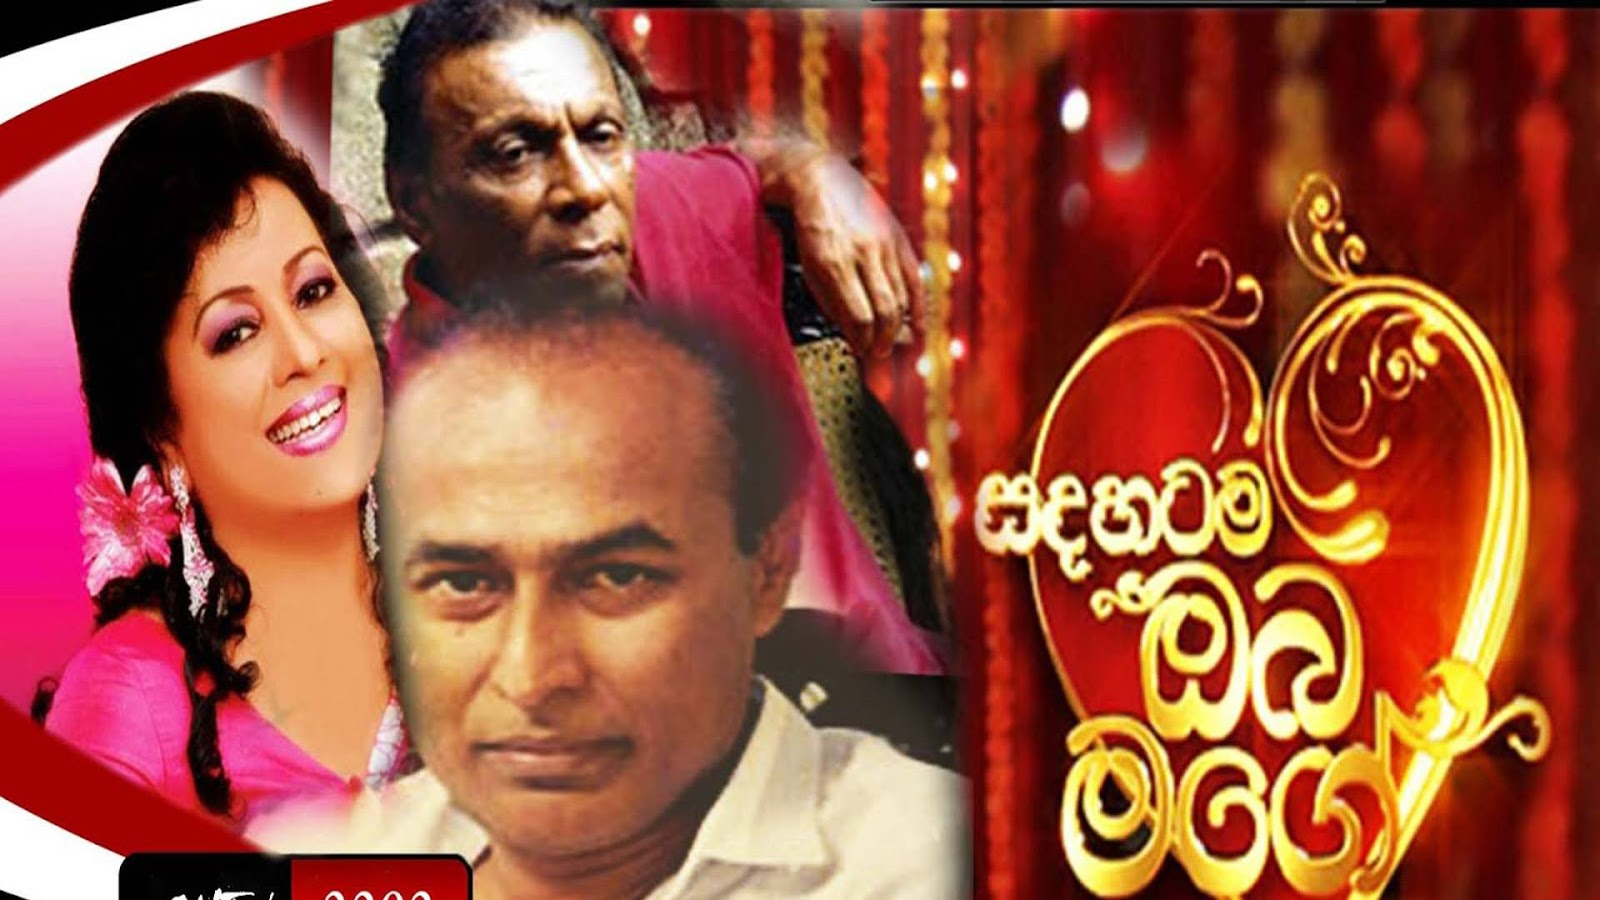 ddl sinhala movies